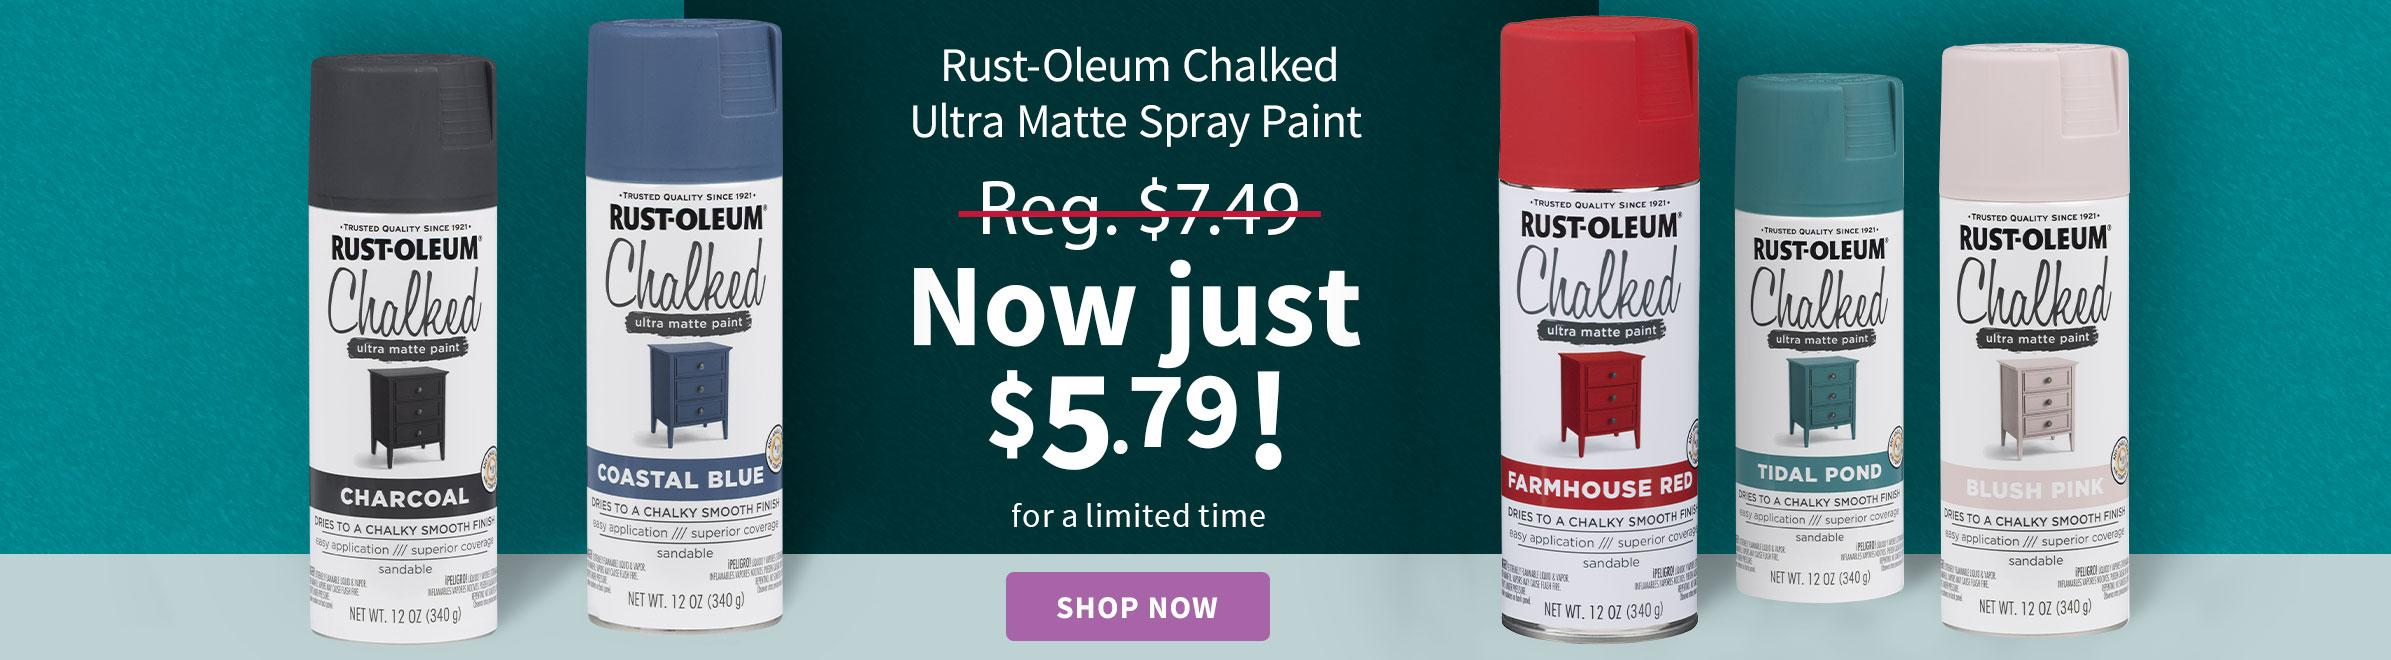 Rust-Oleum 12 Oz. Chalked Ultra Matte Spray Paint